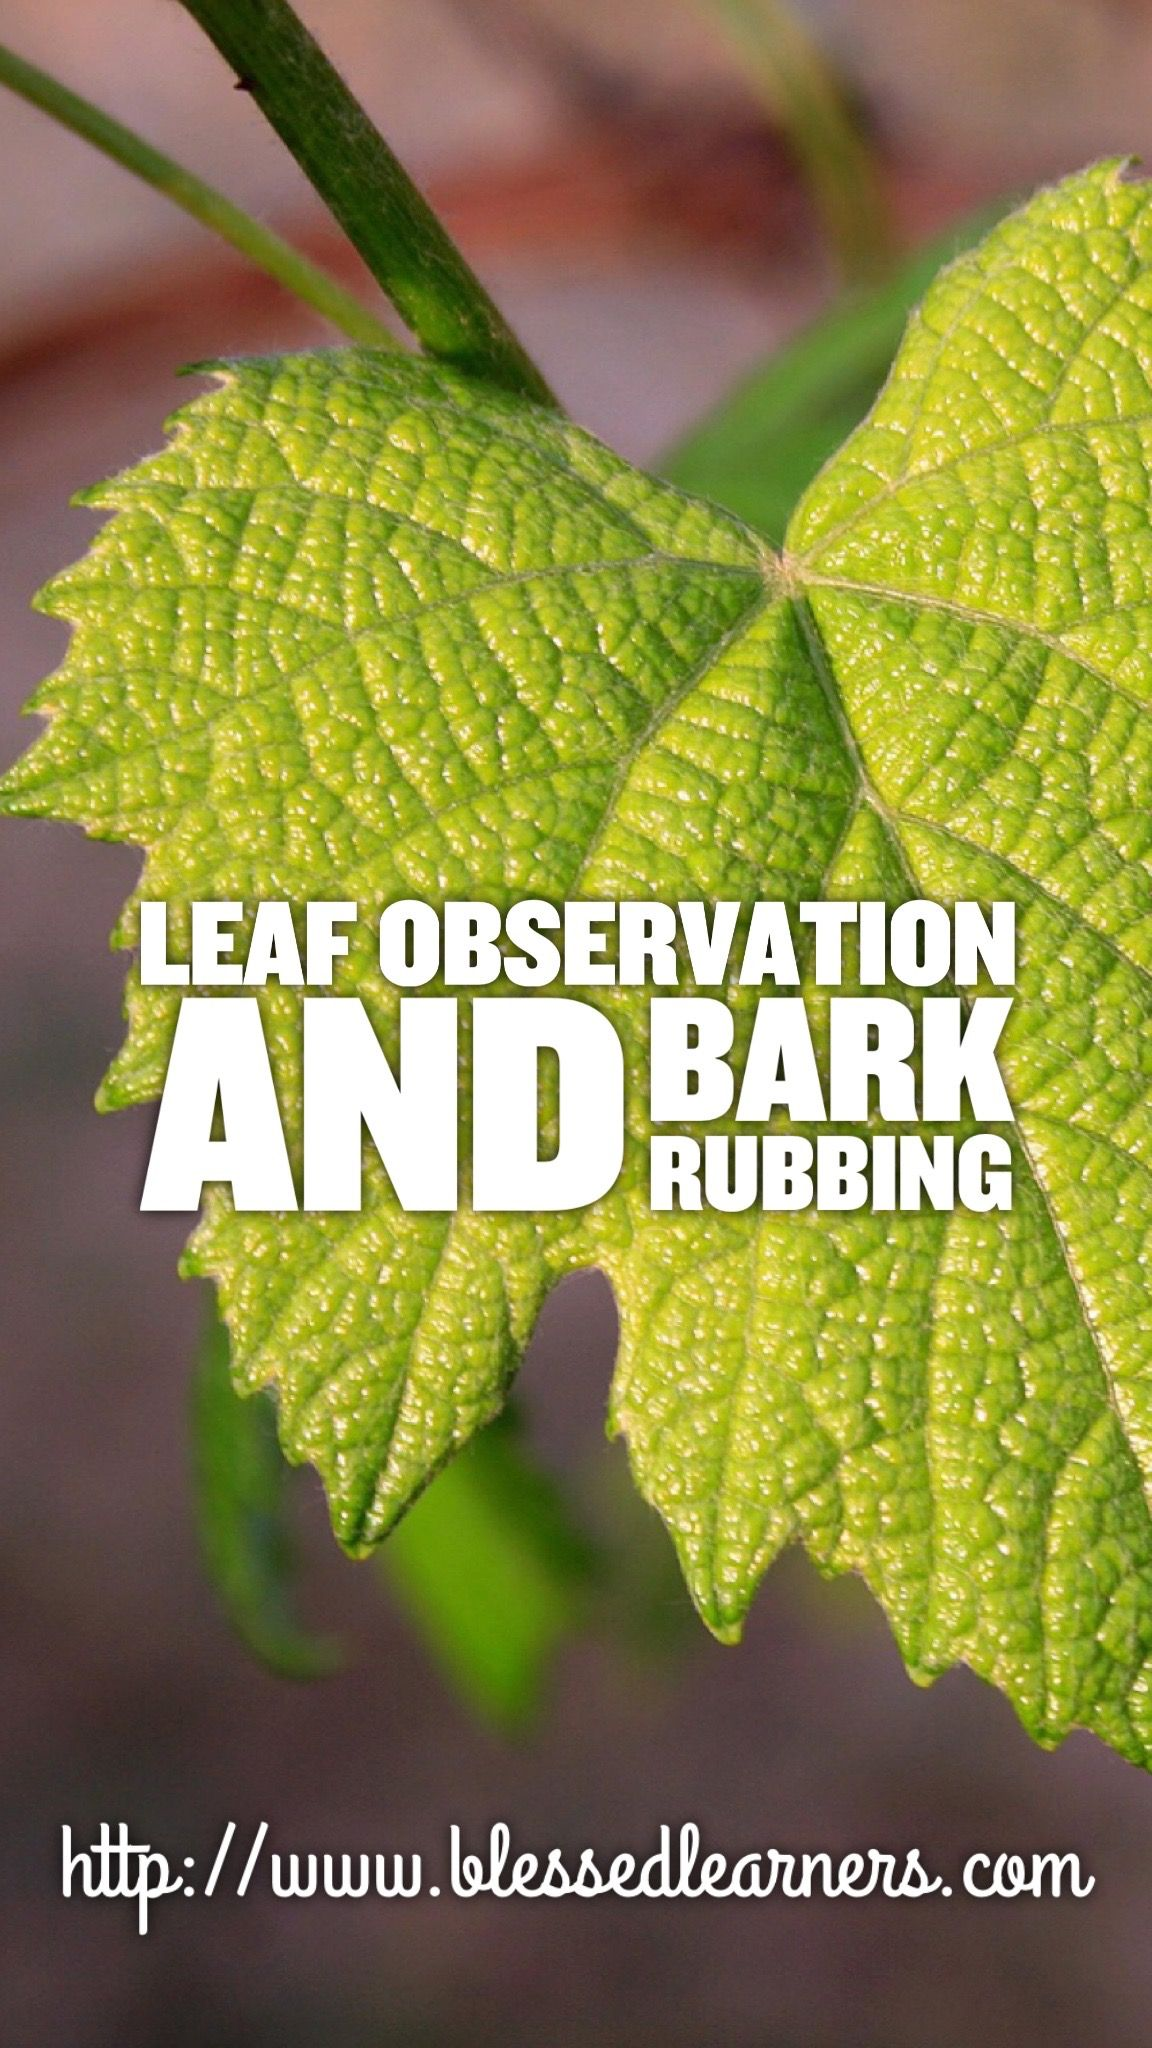 Leaves Observation and Bark Rubbings